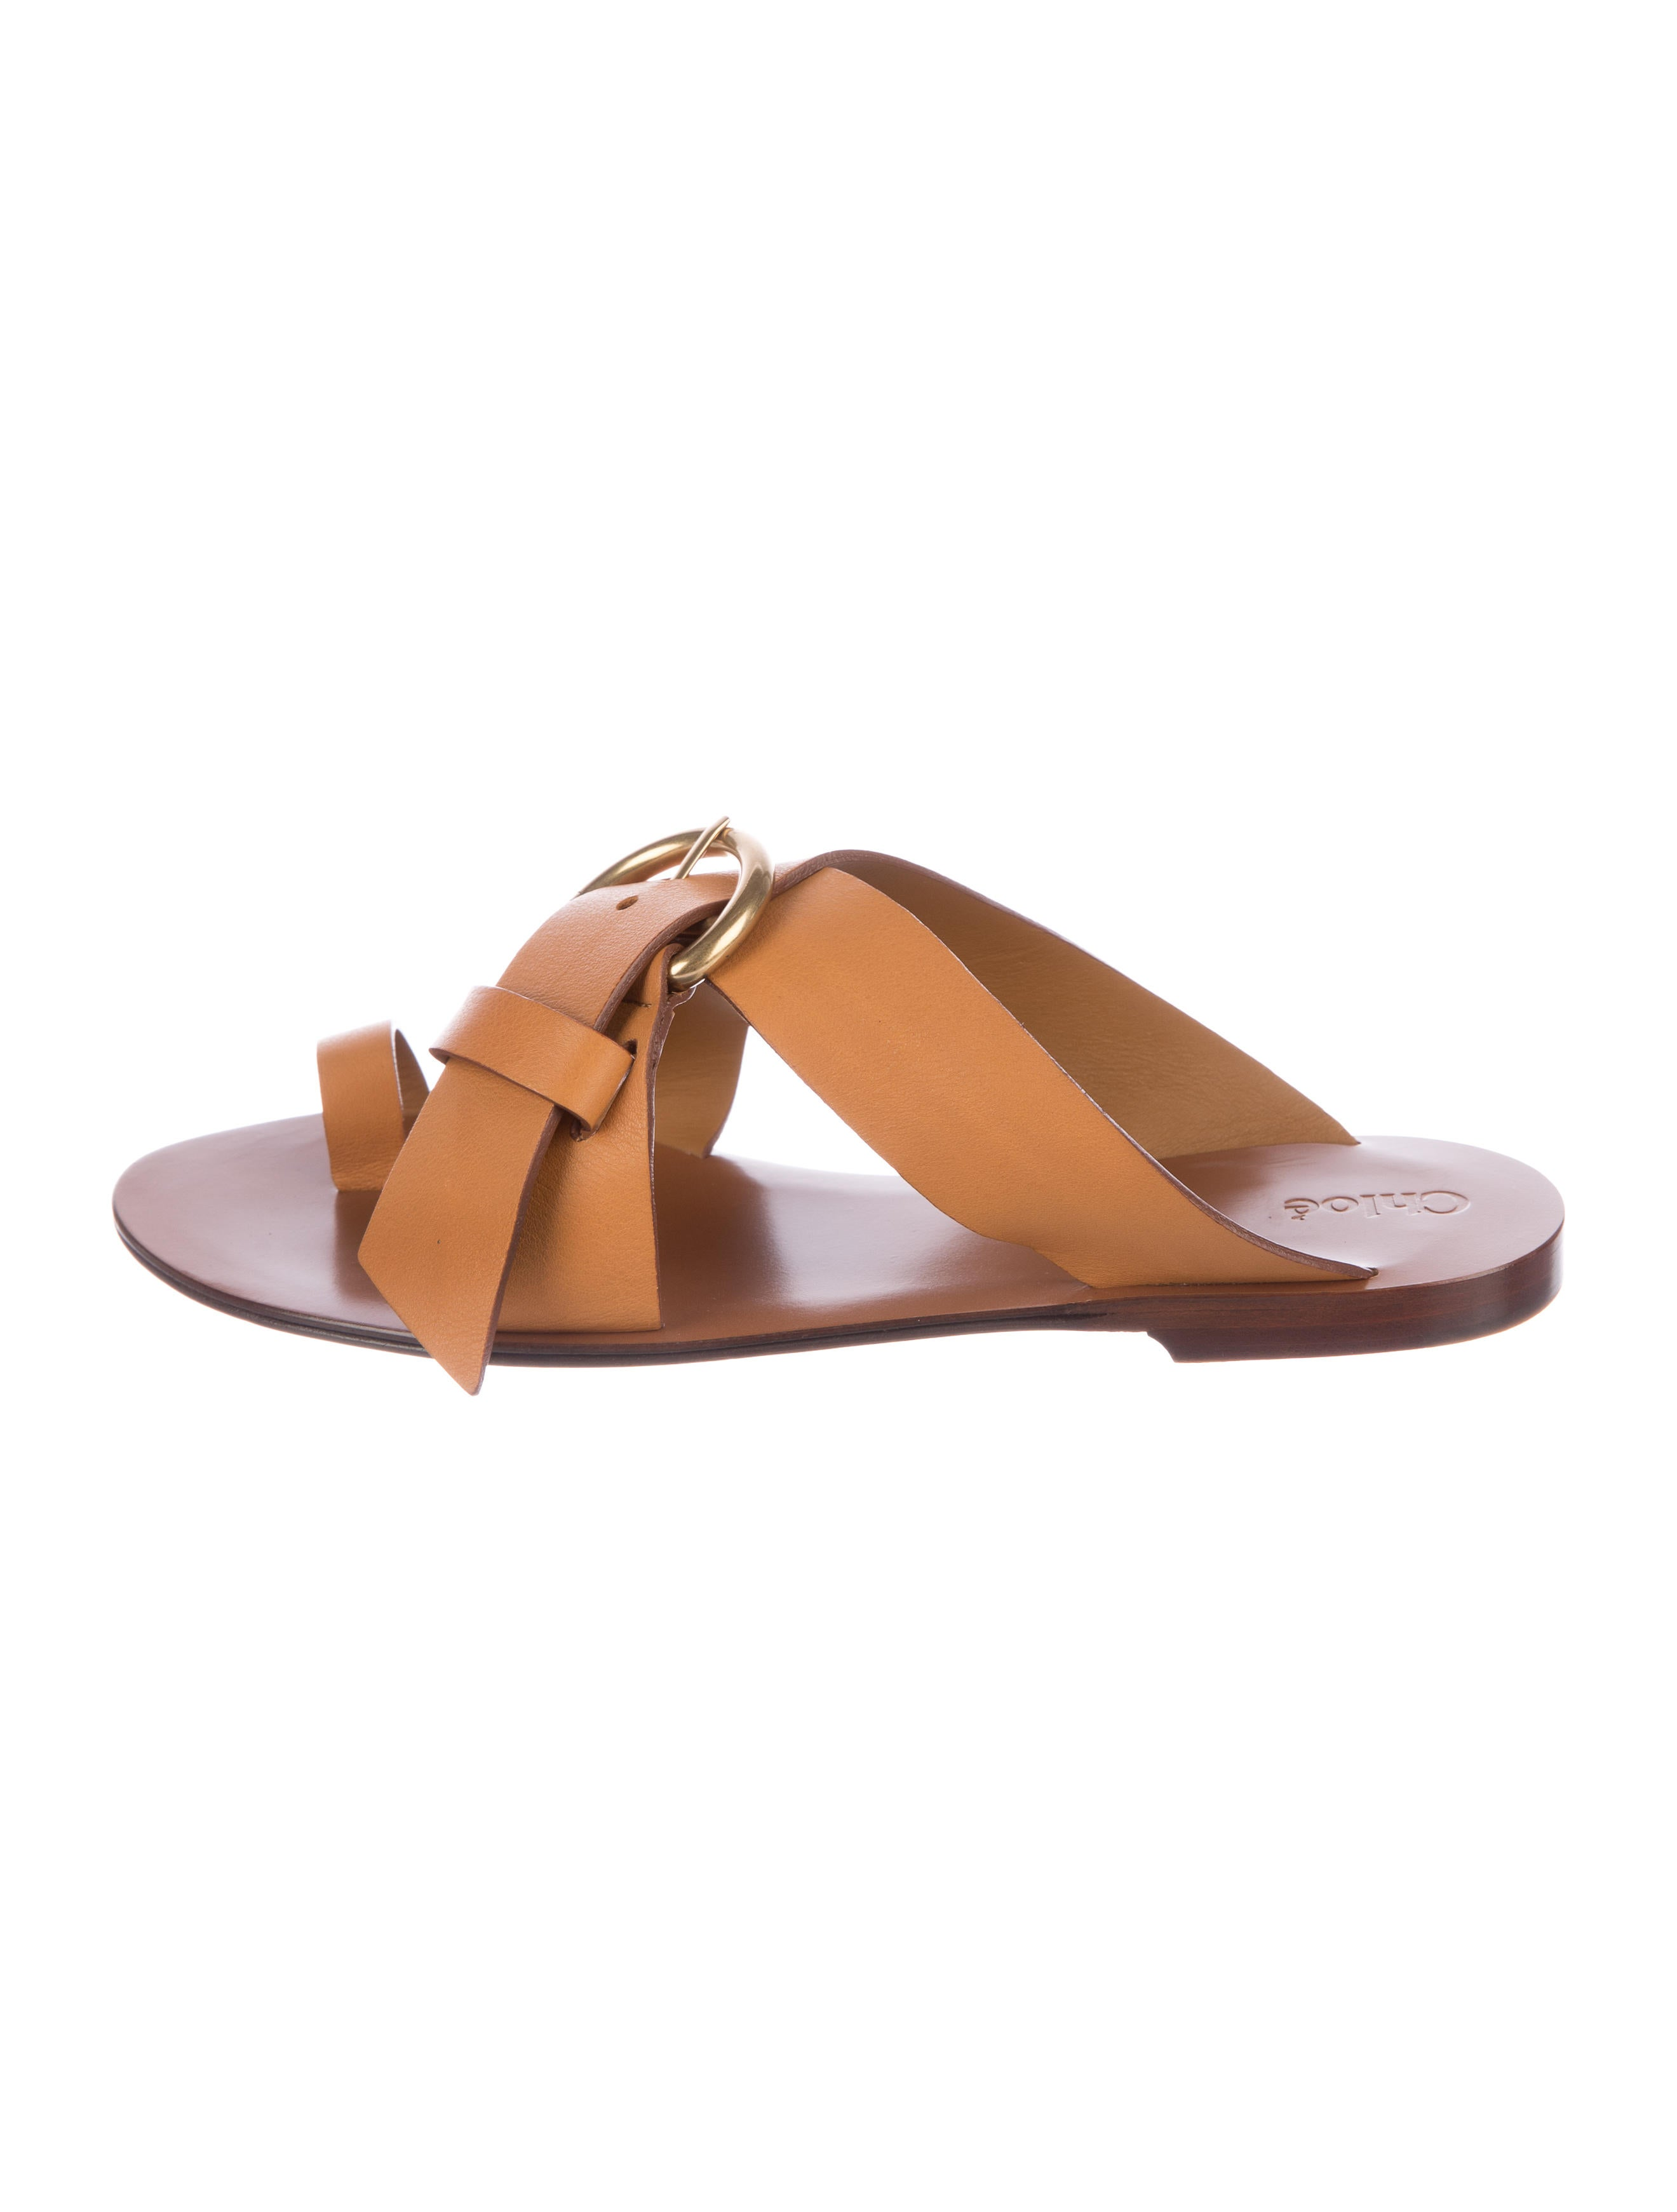 Chloé Leather Crossover Sandals buy cheap shop clearance low shipping low shipping fee cheap price cheap sale get to buy GfXeRAI2